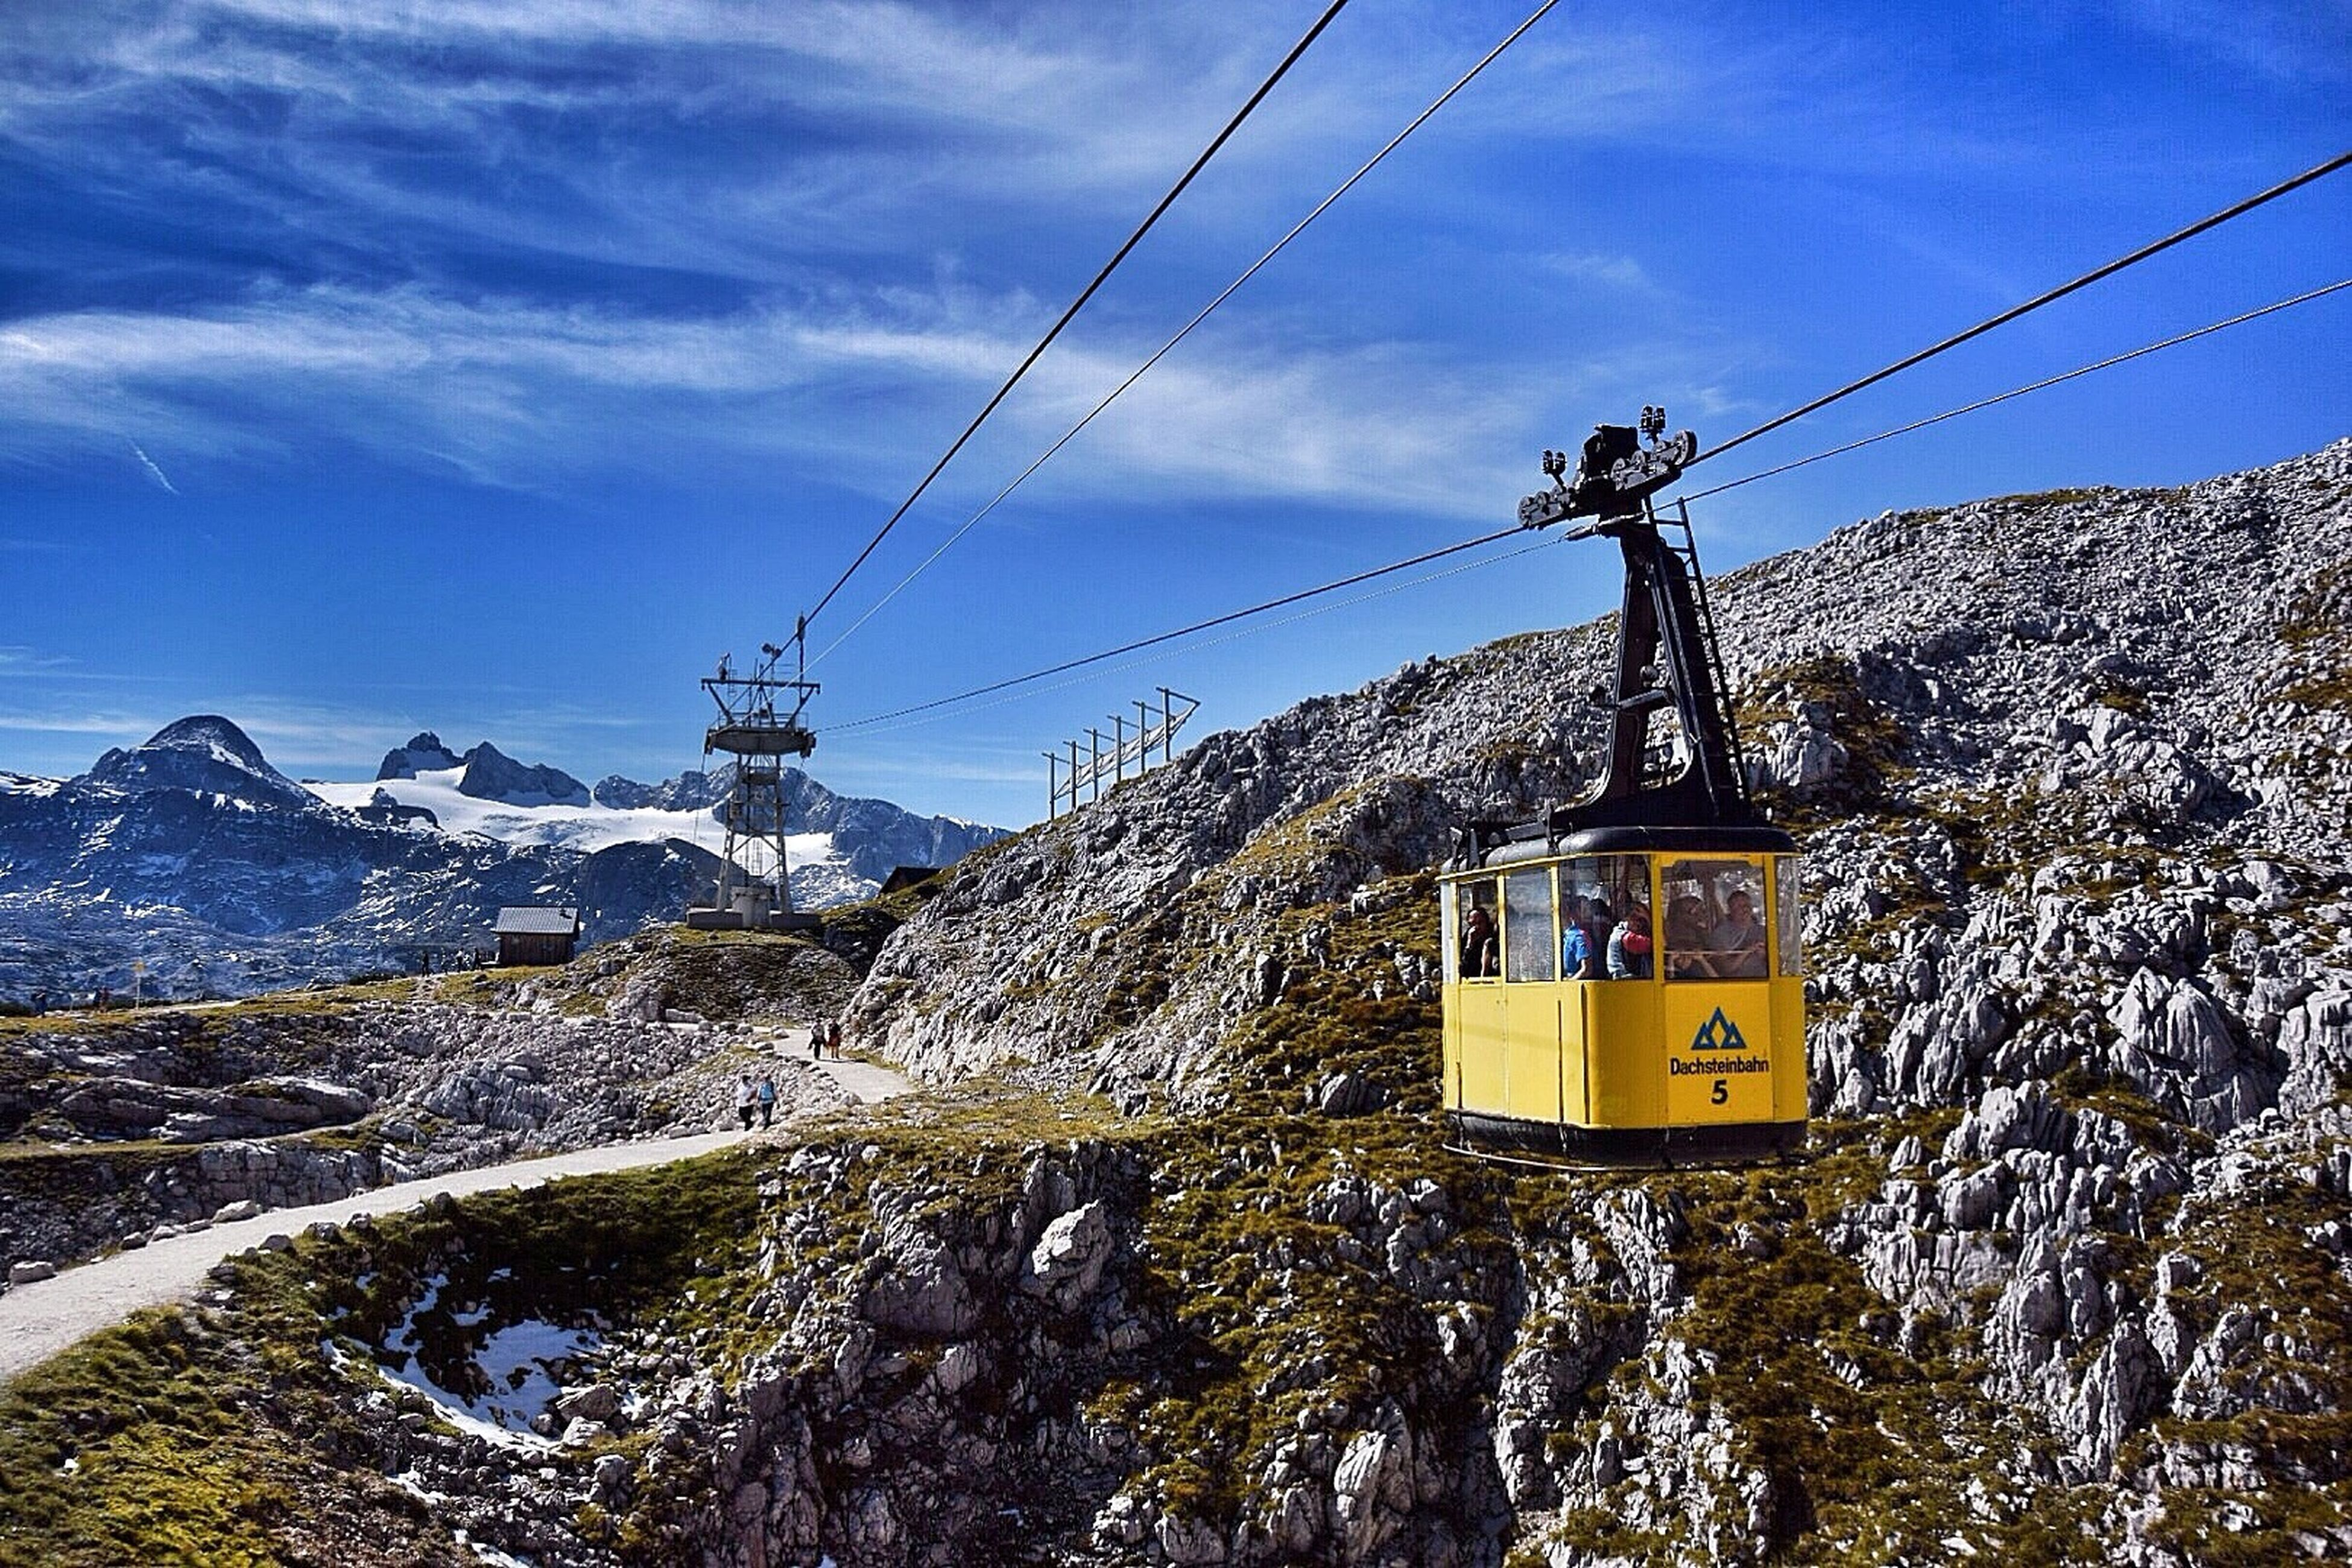 snow, cold temperature, winter, mountain, sky, power line, cable, season, overhead cable car, nature, tranquility, electricity, cloud - sky, weather, electricity pylon, beauty in nature, tranquil scene, scenics, mountain range, snowcapped mountain